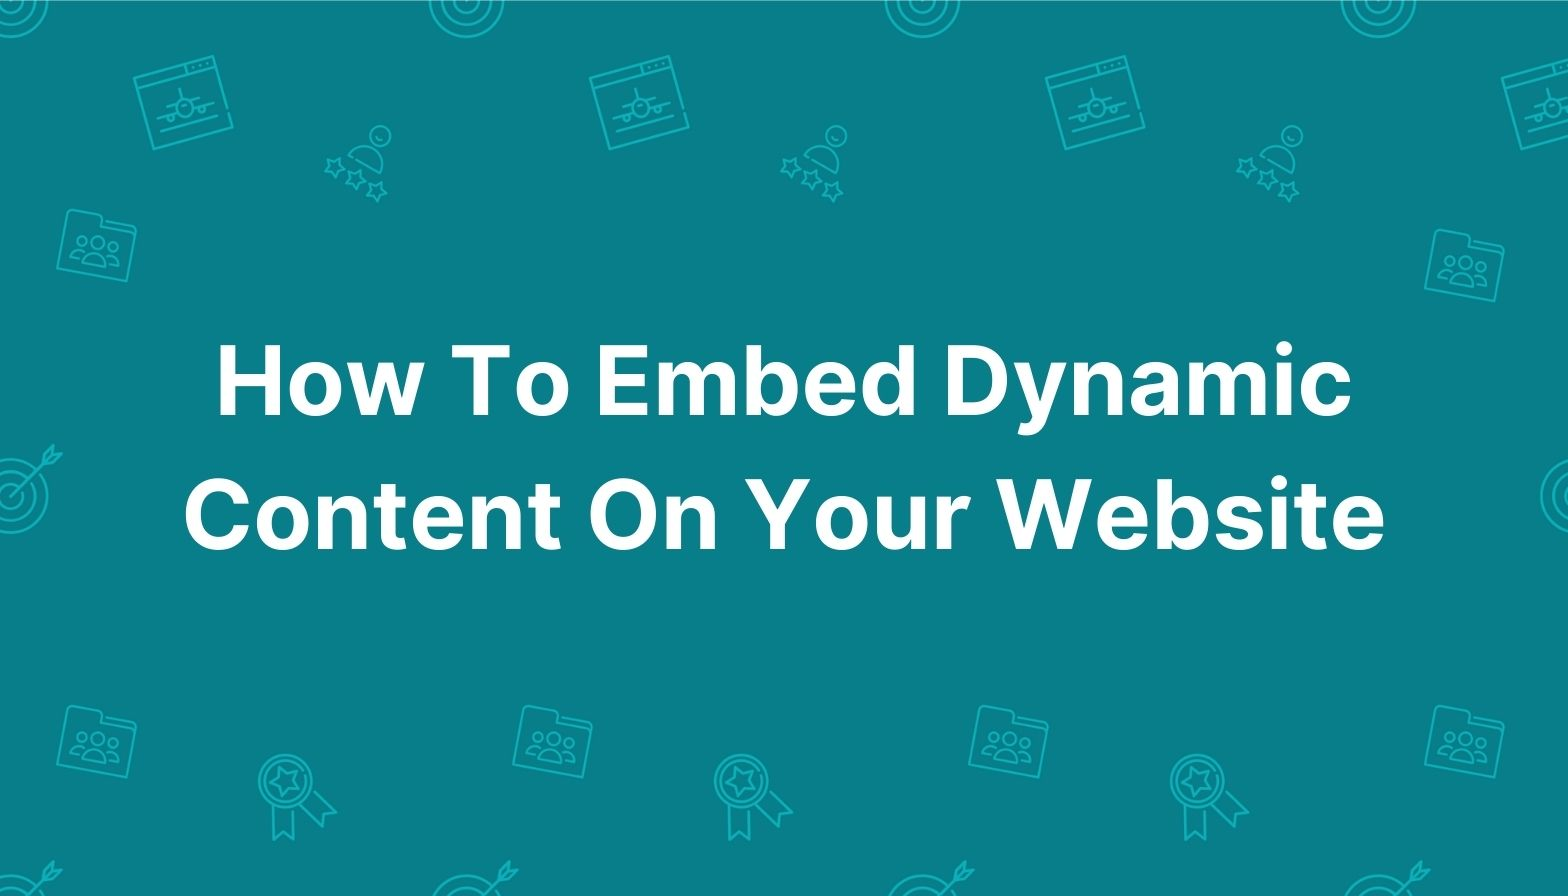 Feature image: How to embed dynamic content on your website